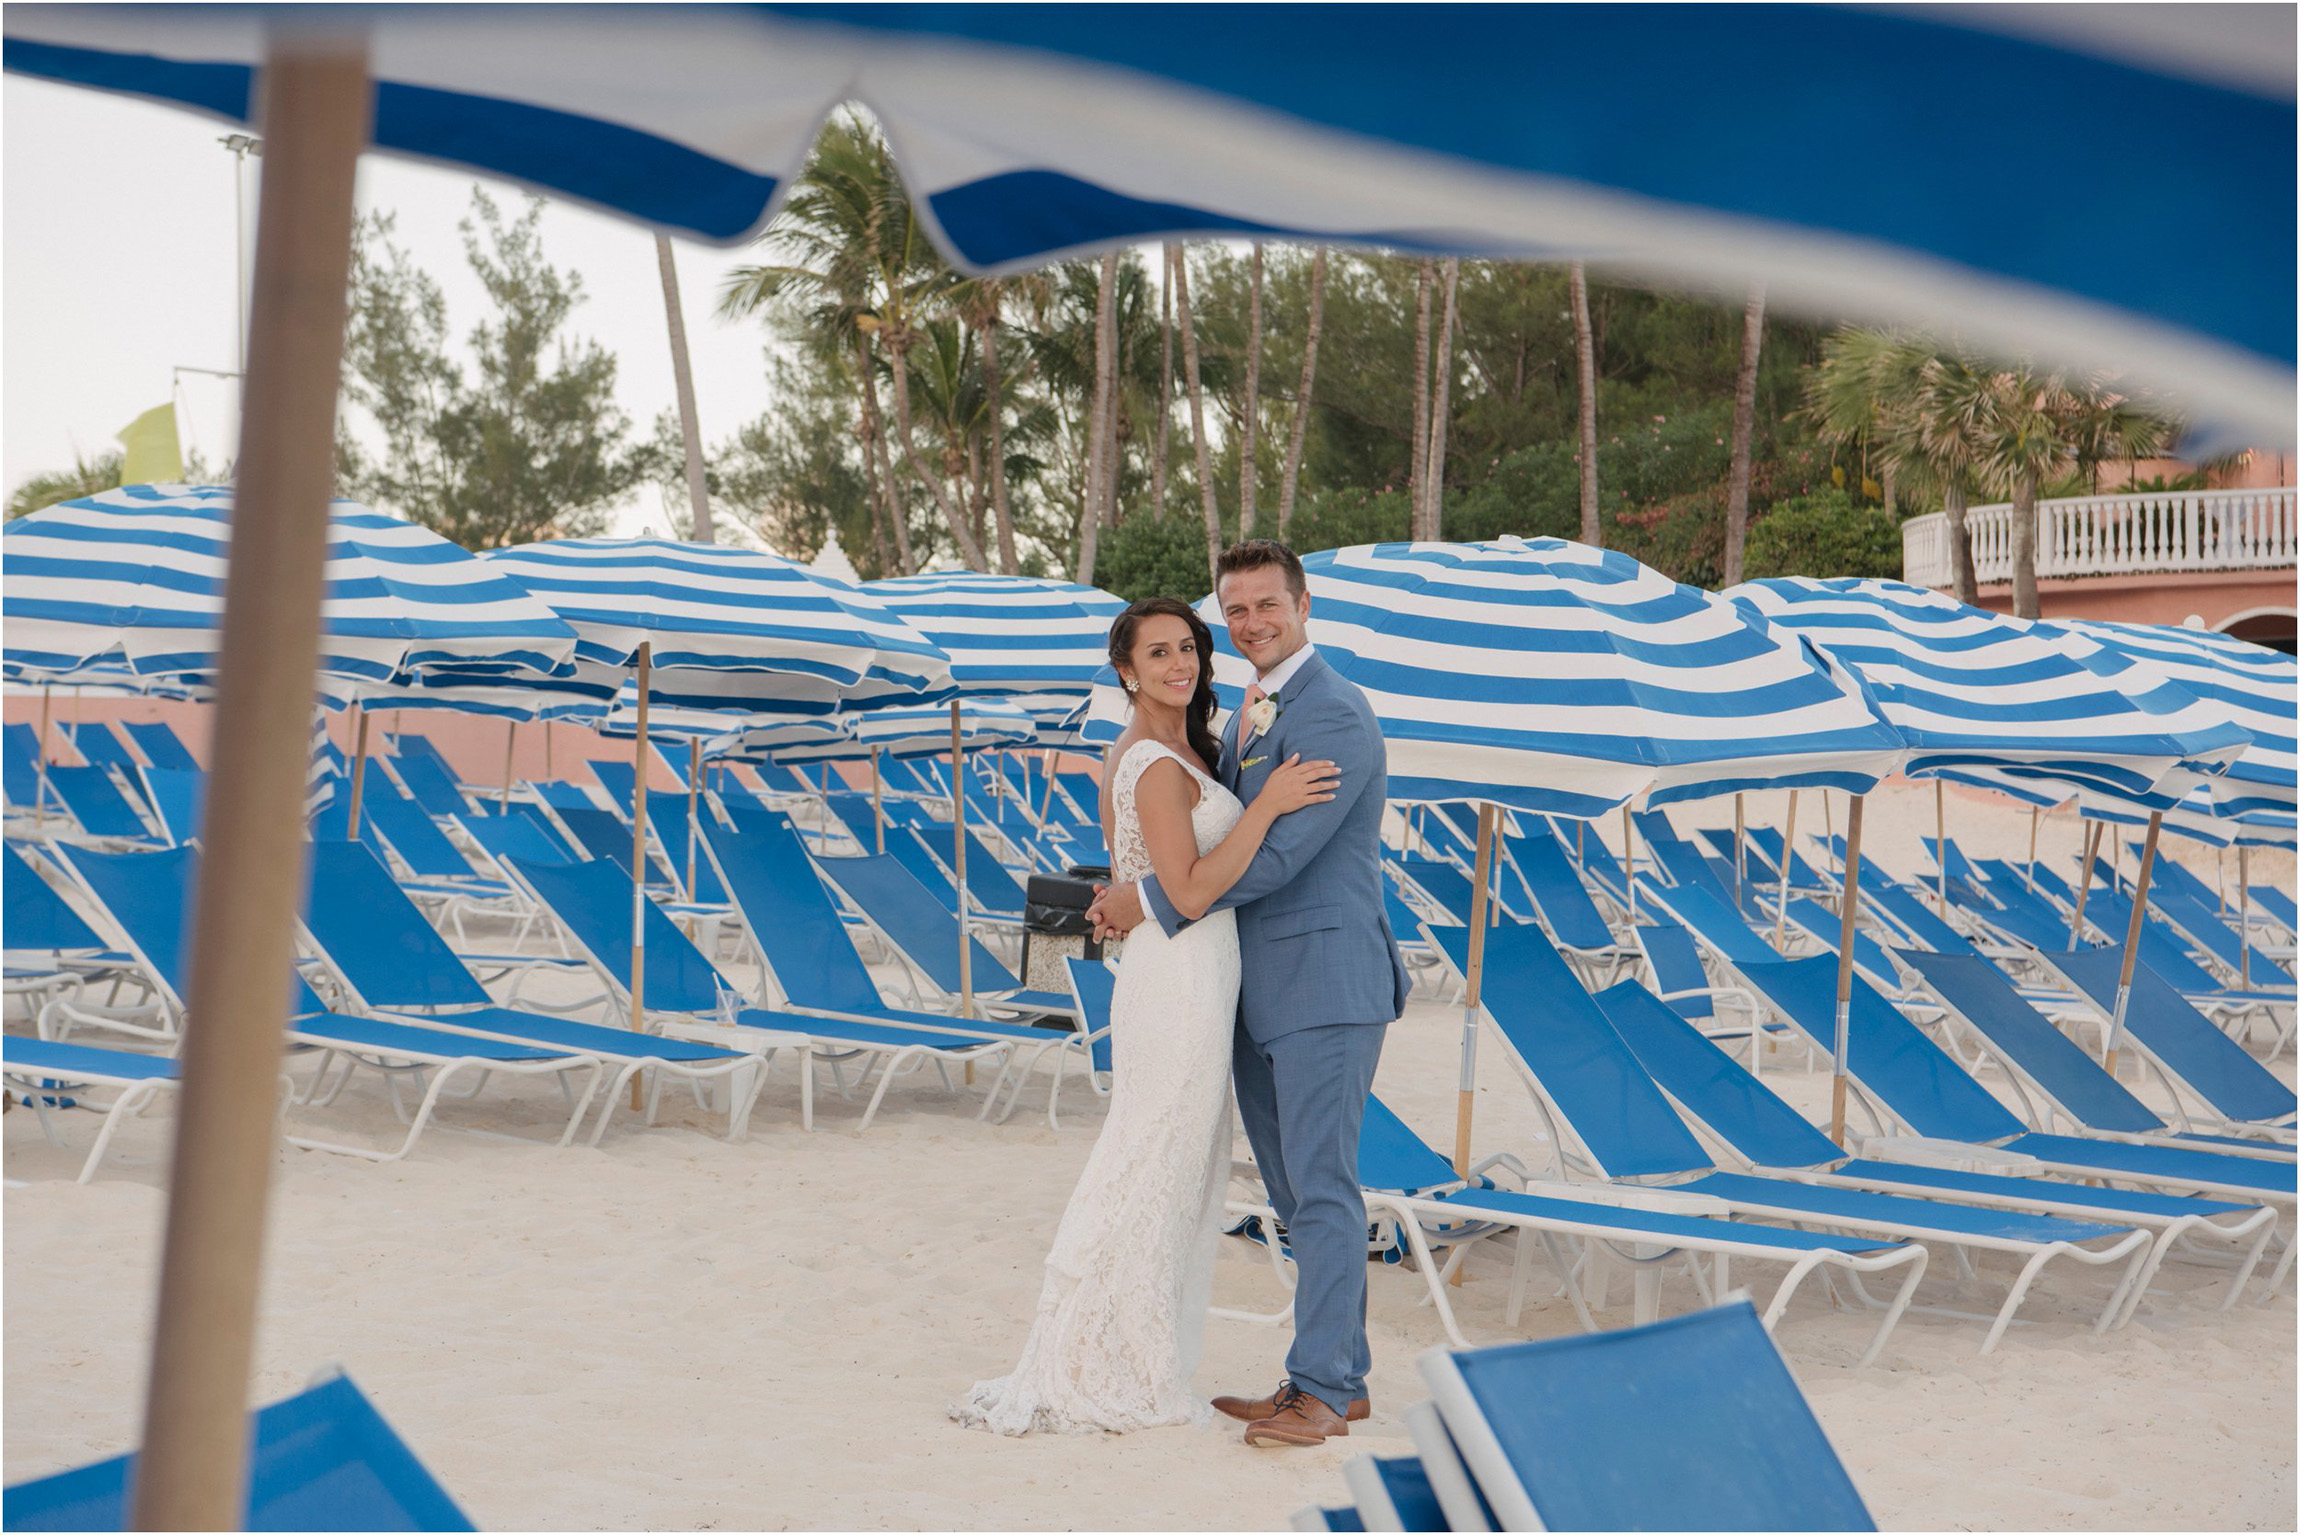 ©FianderFoto_Bermuda Wedding Photographer_Fairmont Southampton_Wedding_Anna_Thomas_096.jpg